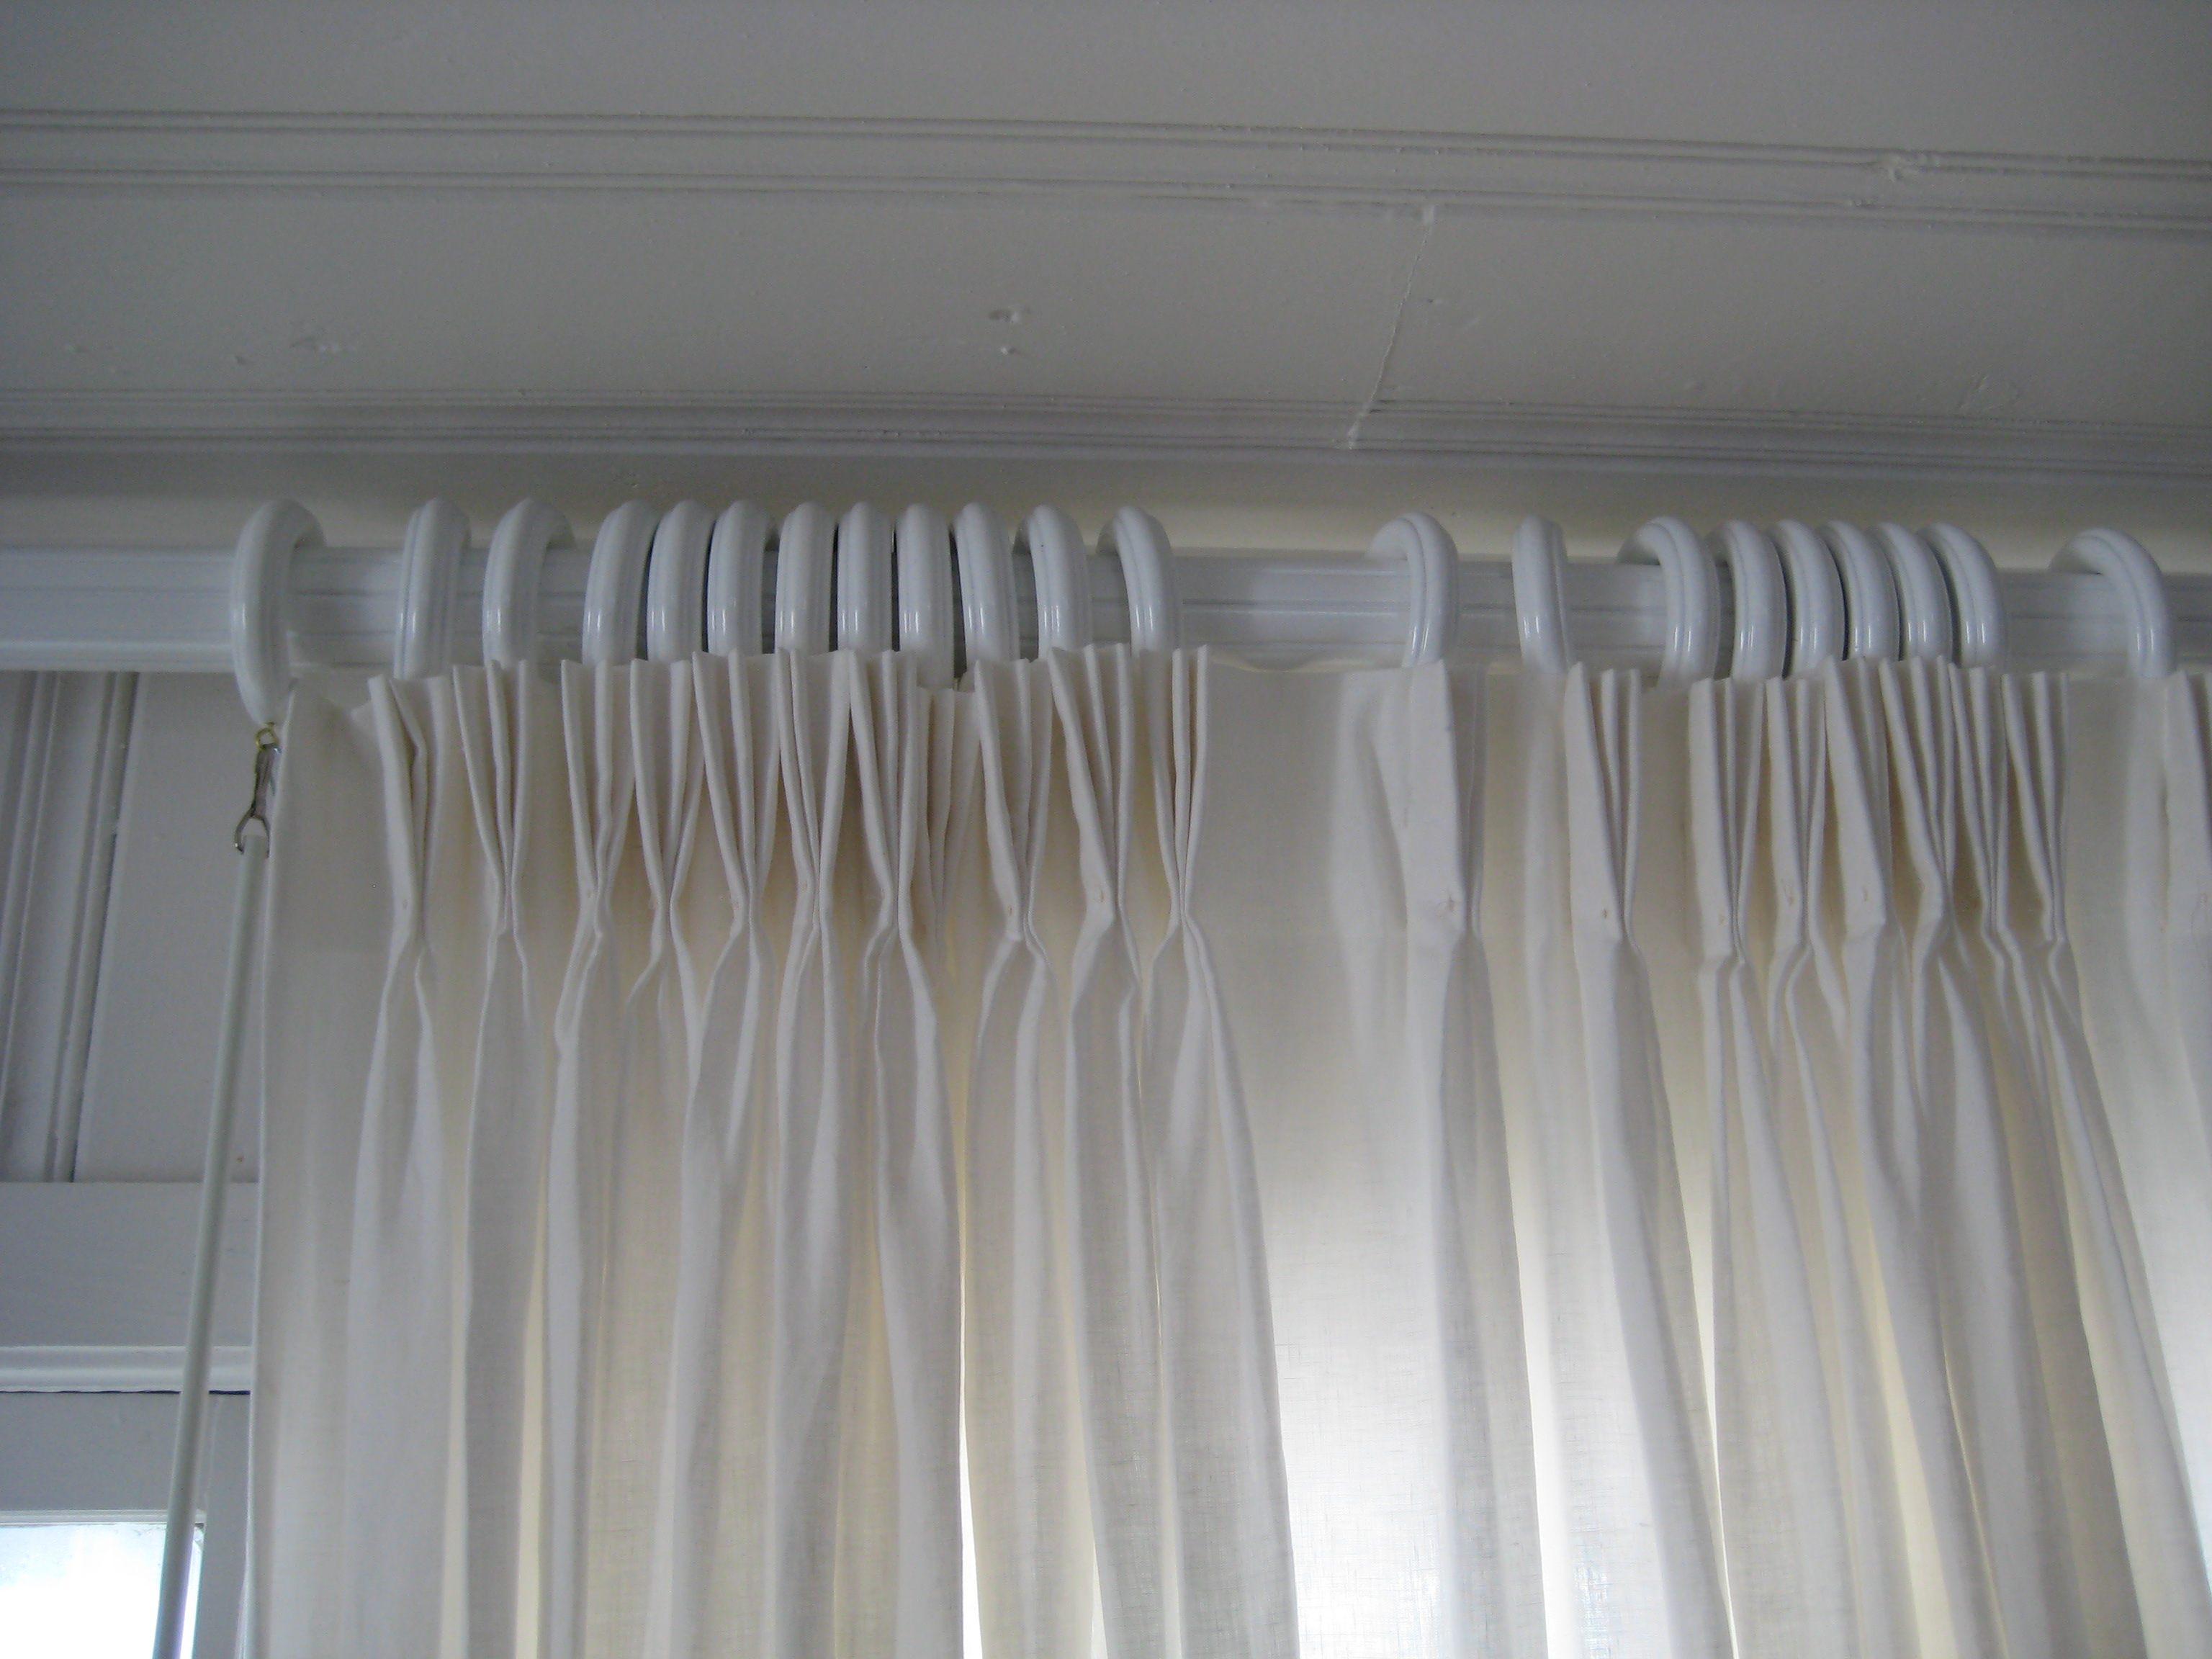 design drapes hooks curtains x window croscill curtain dimensions ideas leaf spa with rings shower